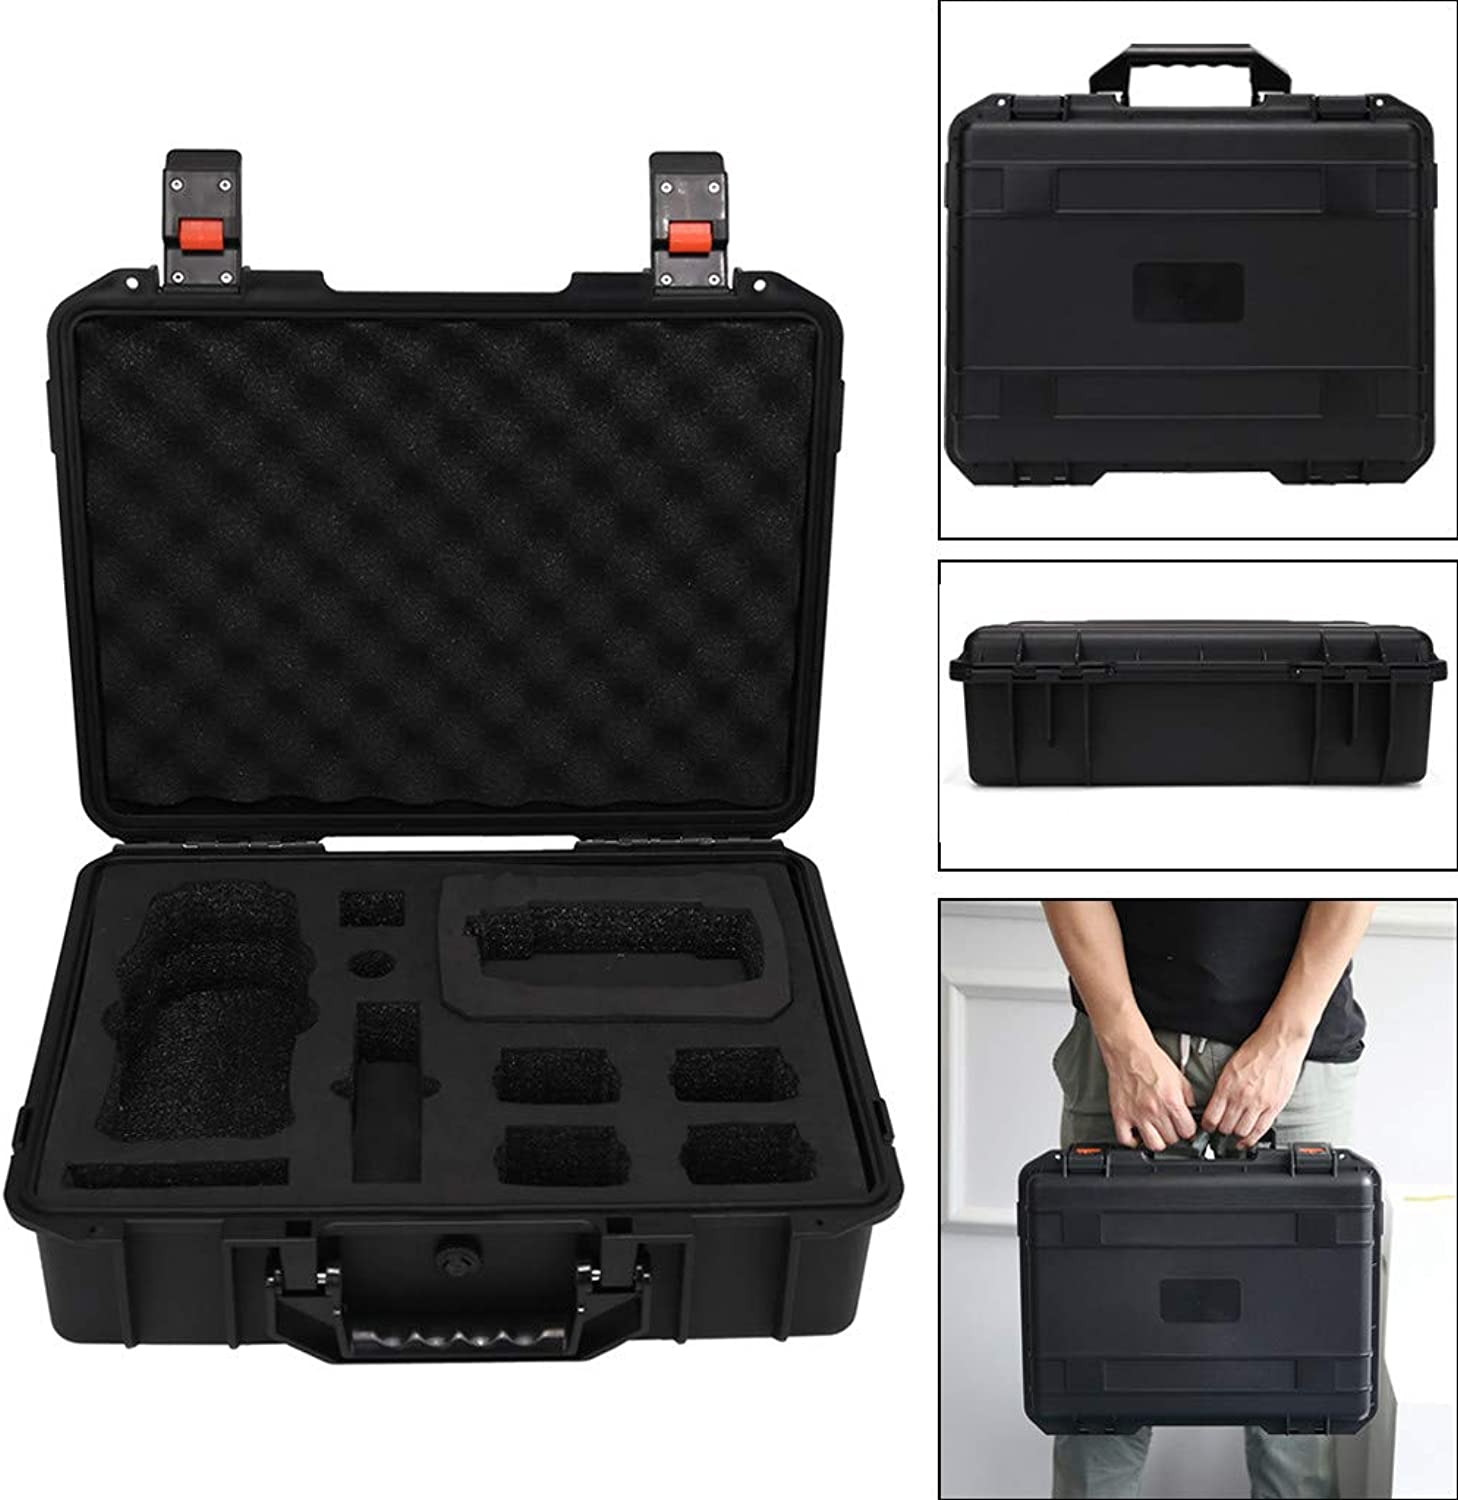 Tensay Military Spec Hardshell Carrying Case Waterproof Storage Case for DJI Mavic 2 Pro Zoom & Smart Controller, Drone Accessories Bags